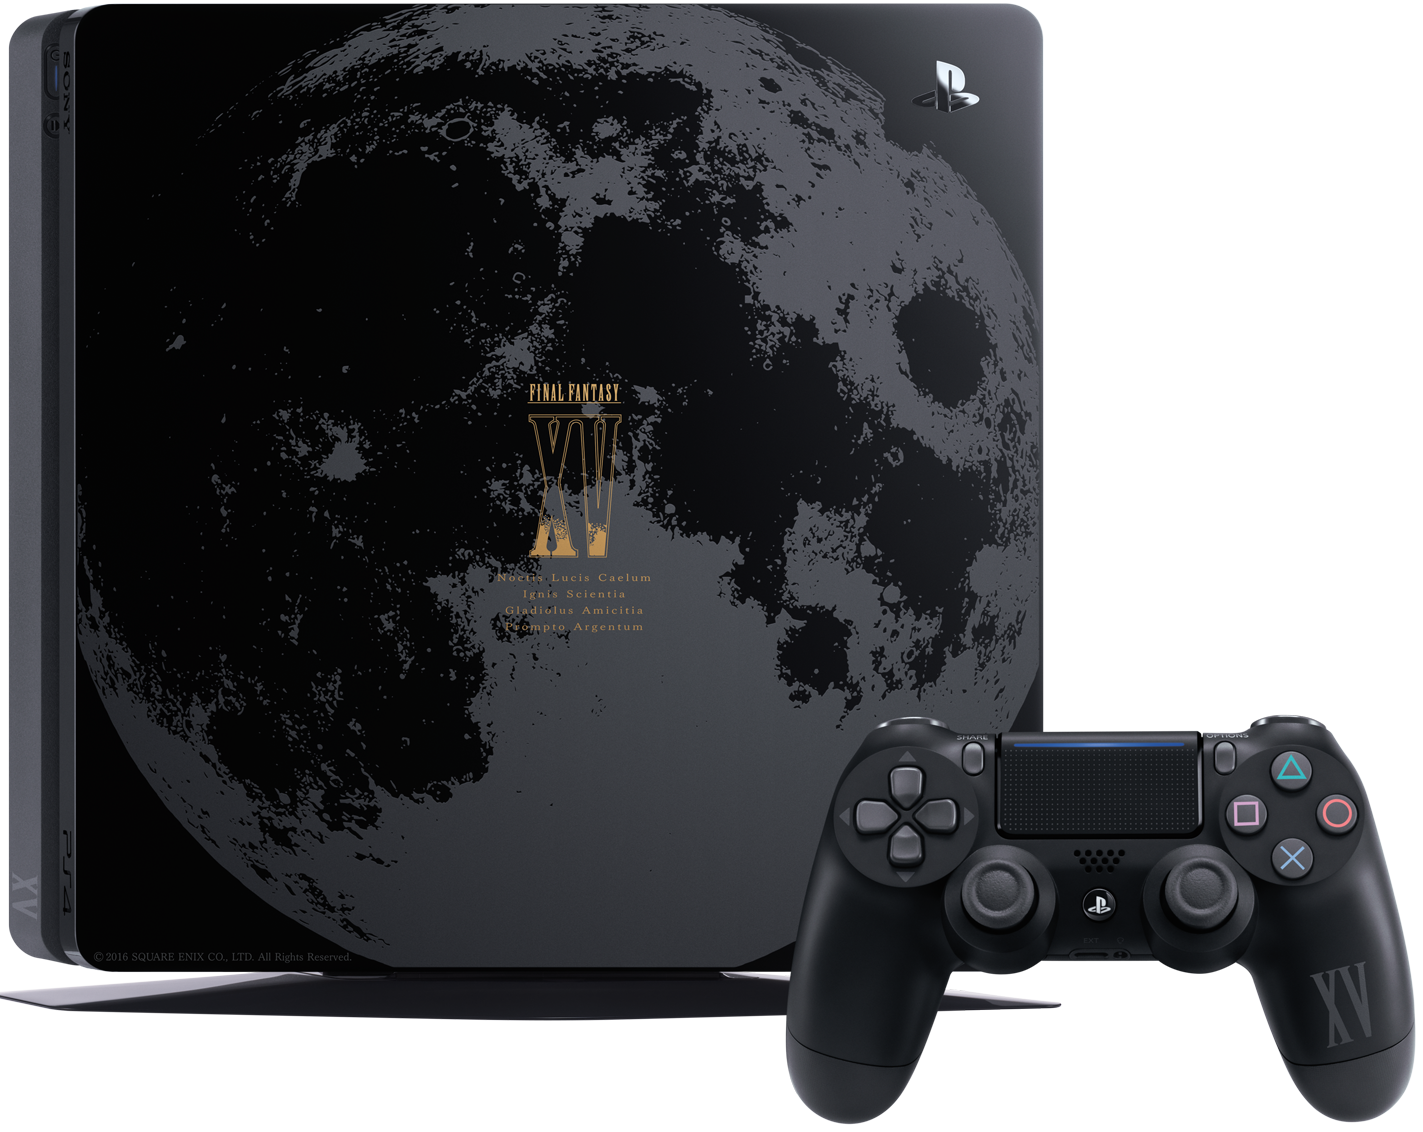 Sony unveils Limited Deluxe Edition Final Fantasy XV PS4 bundle, yours for $449